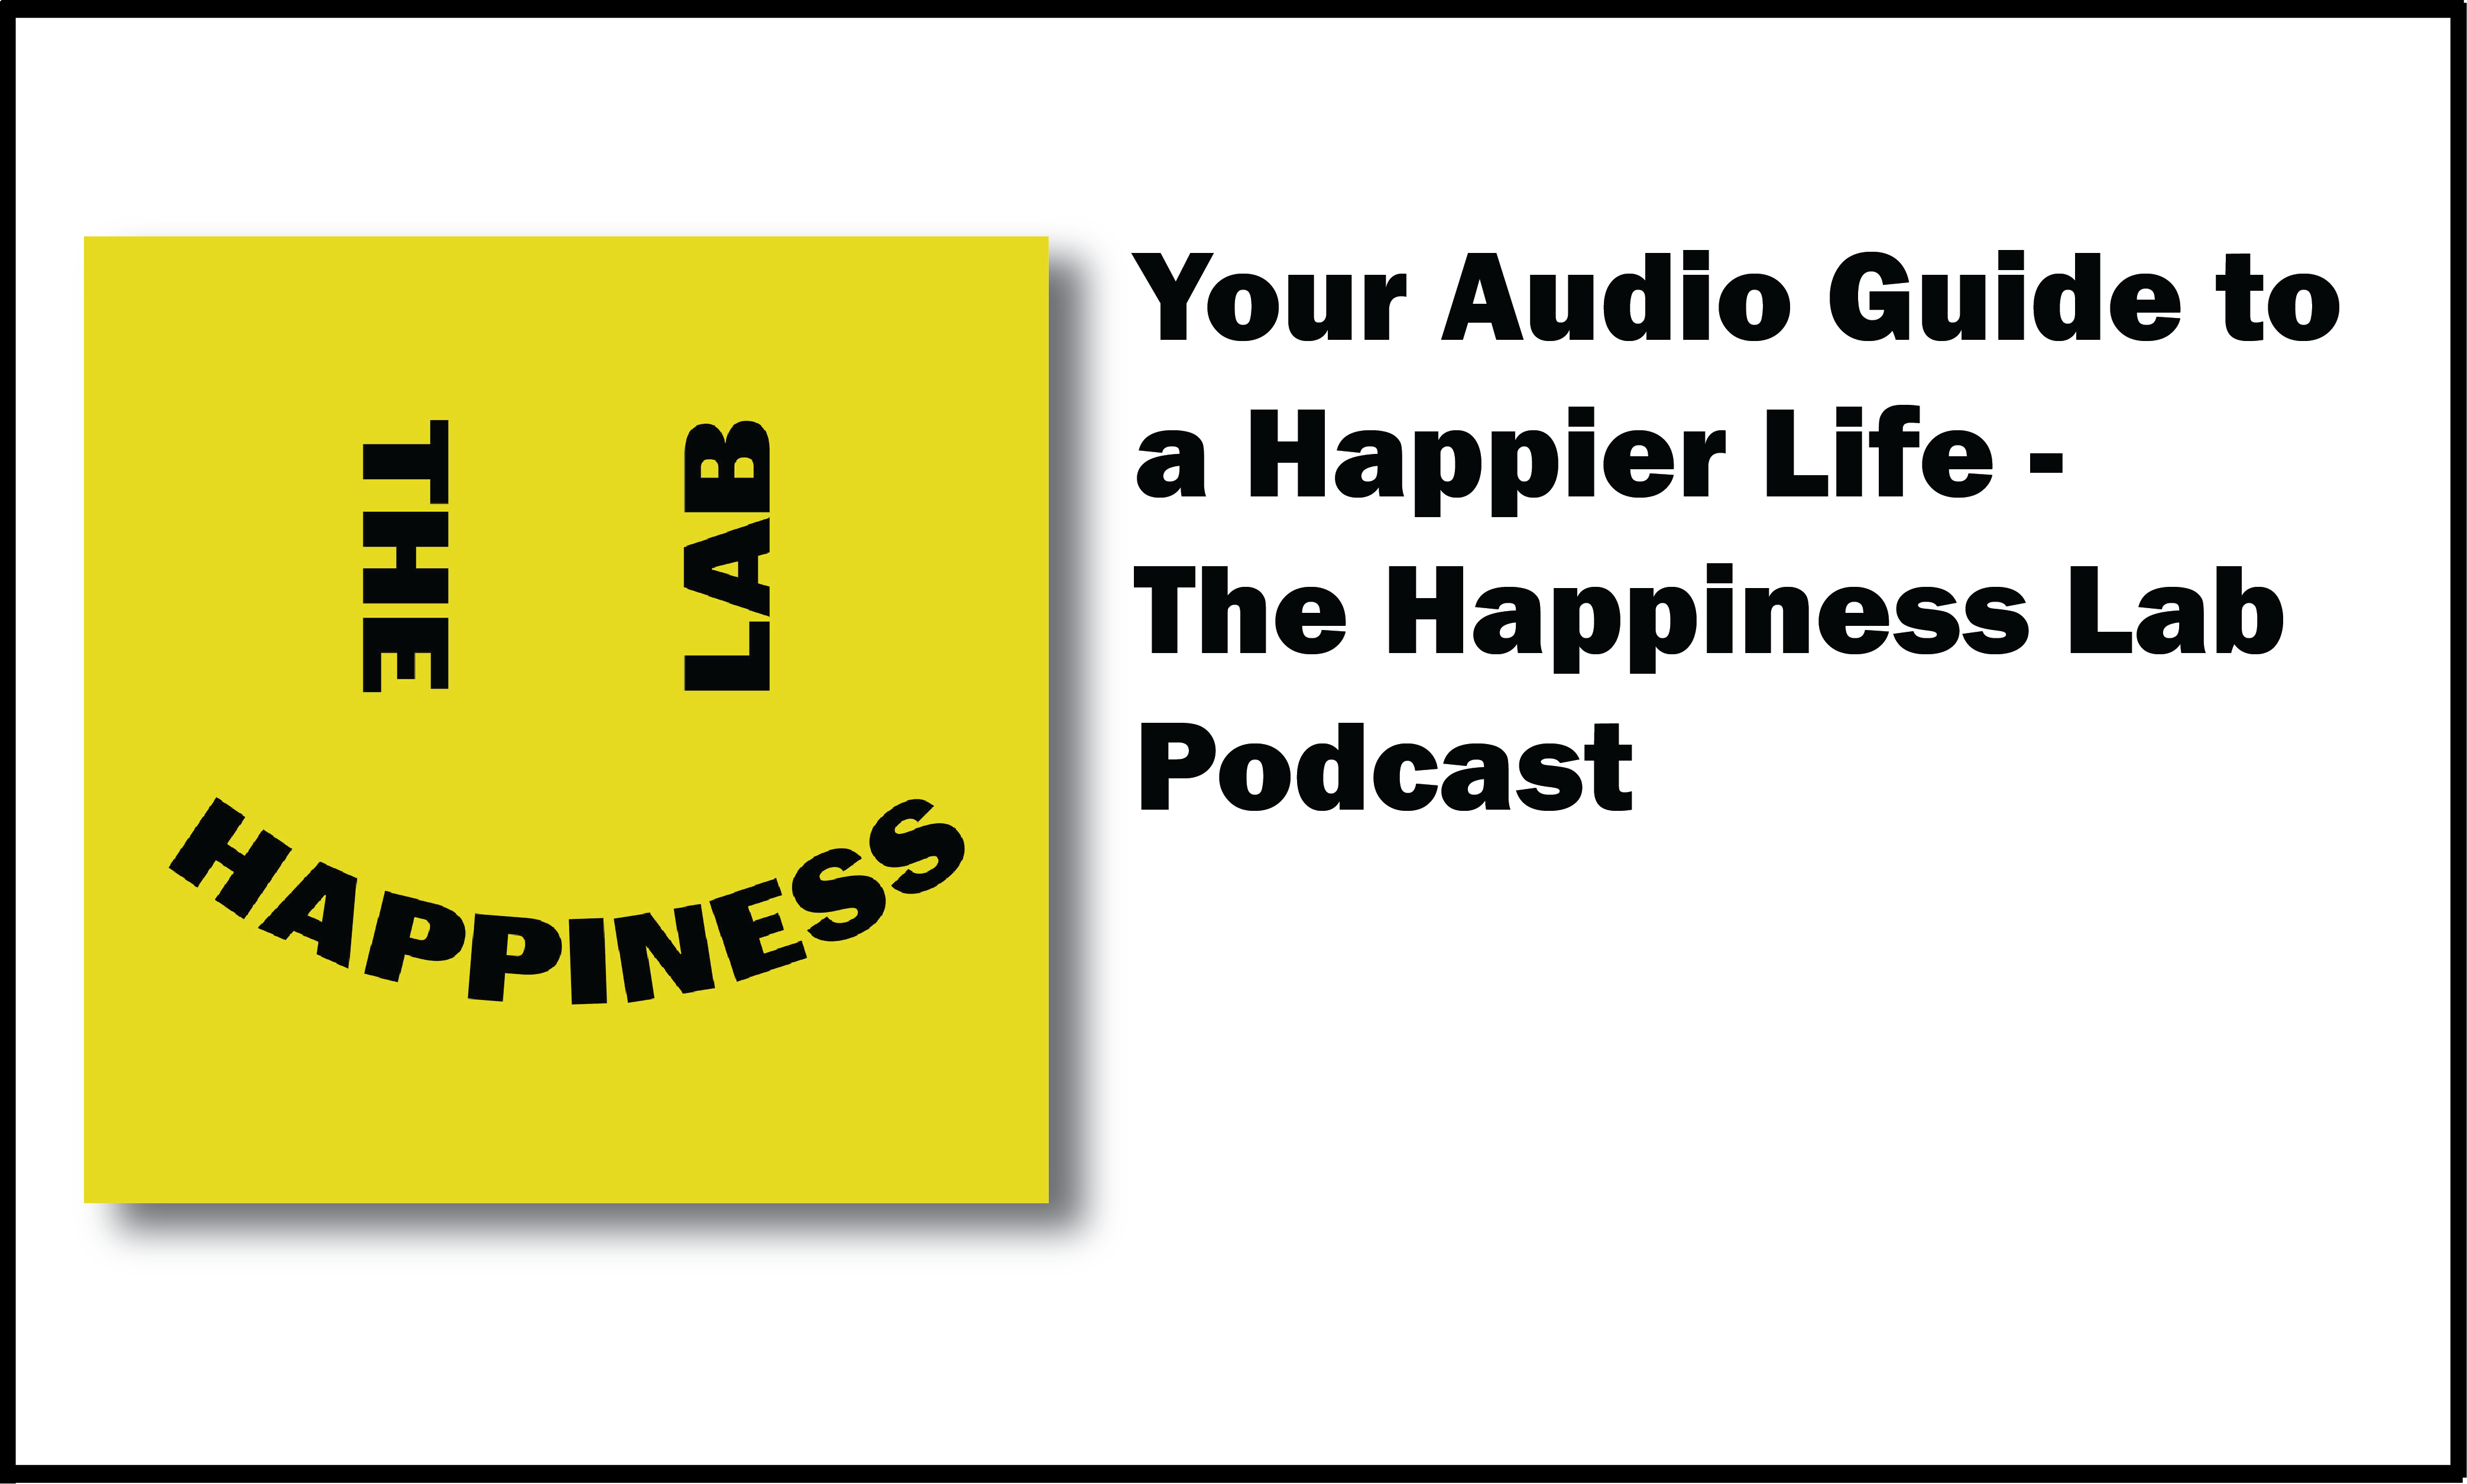 Happiness_Lab_Podcast_Header.png